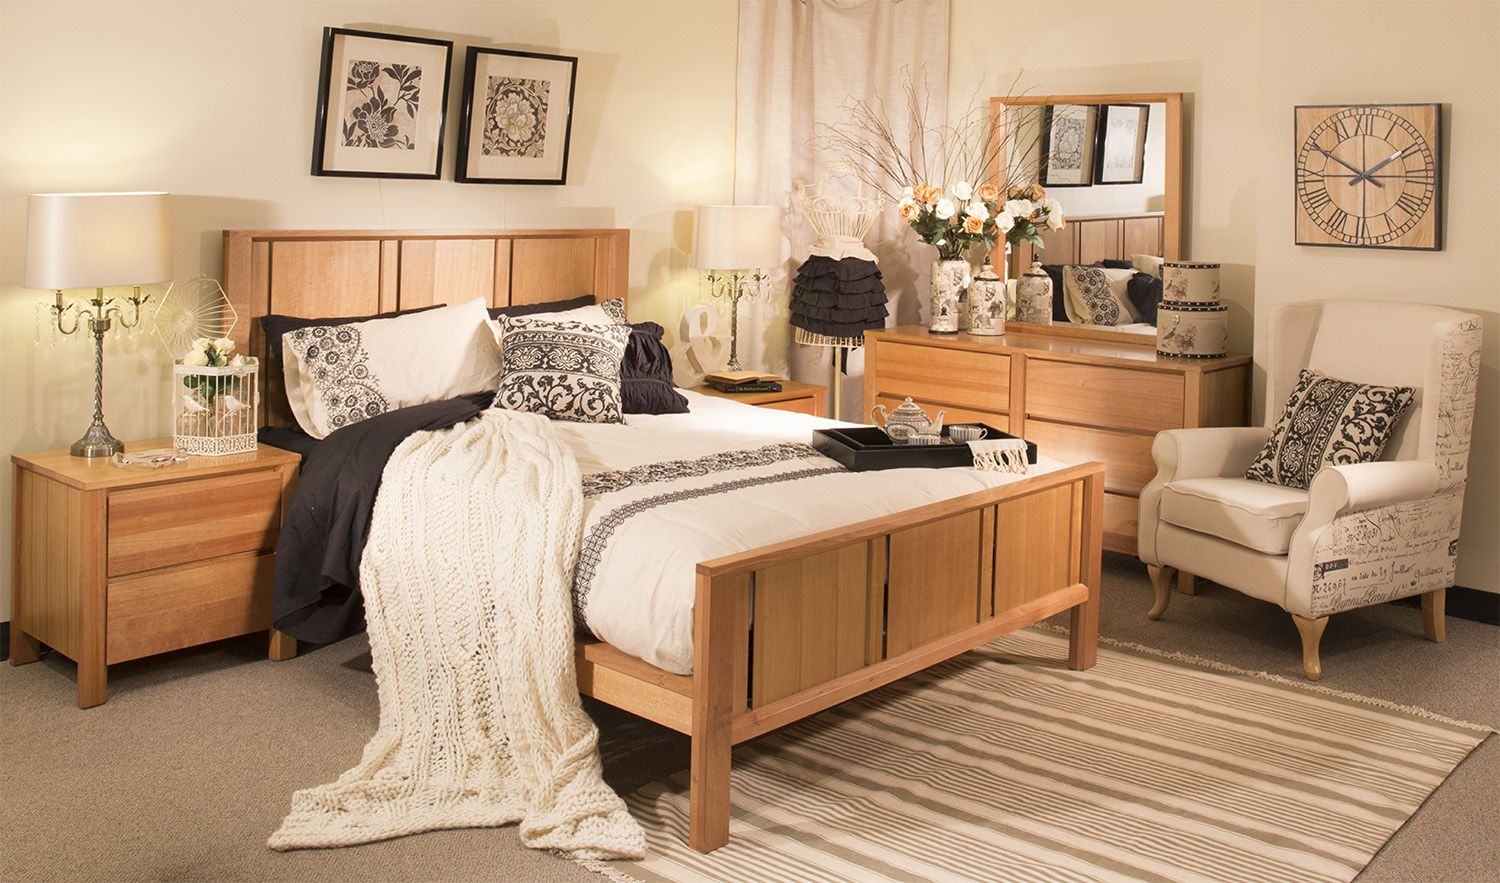 Jasmine tasmanian oak bedroom furniture bedroom pinterest oak